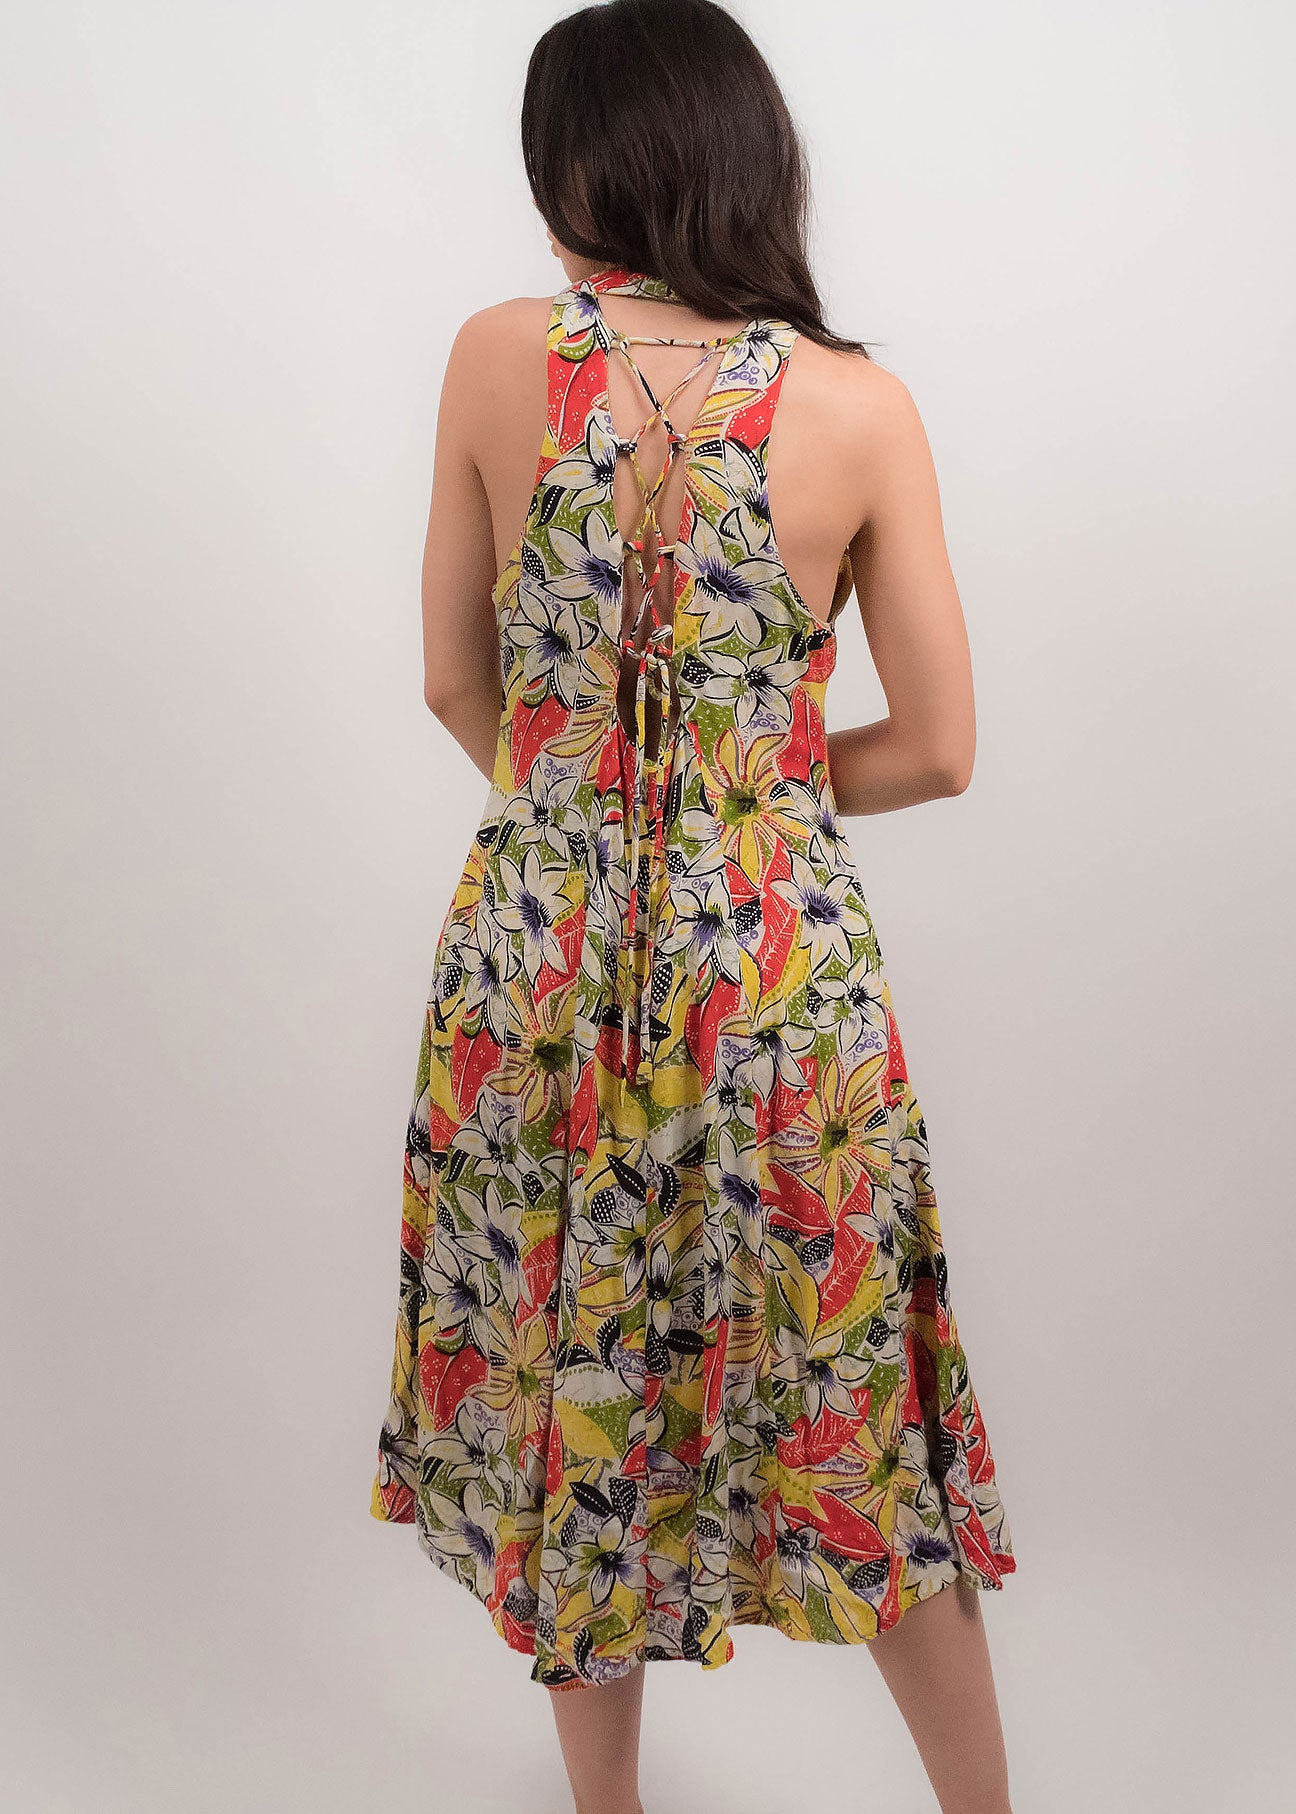 80s Tropical Floral Dress